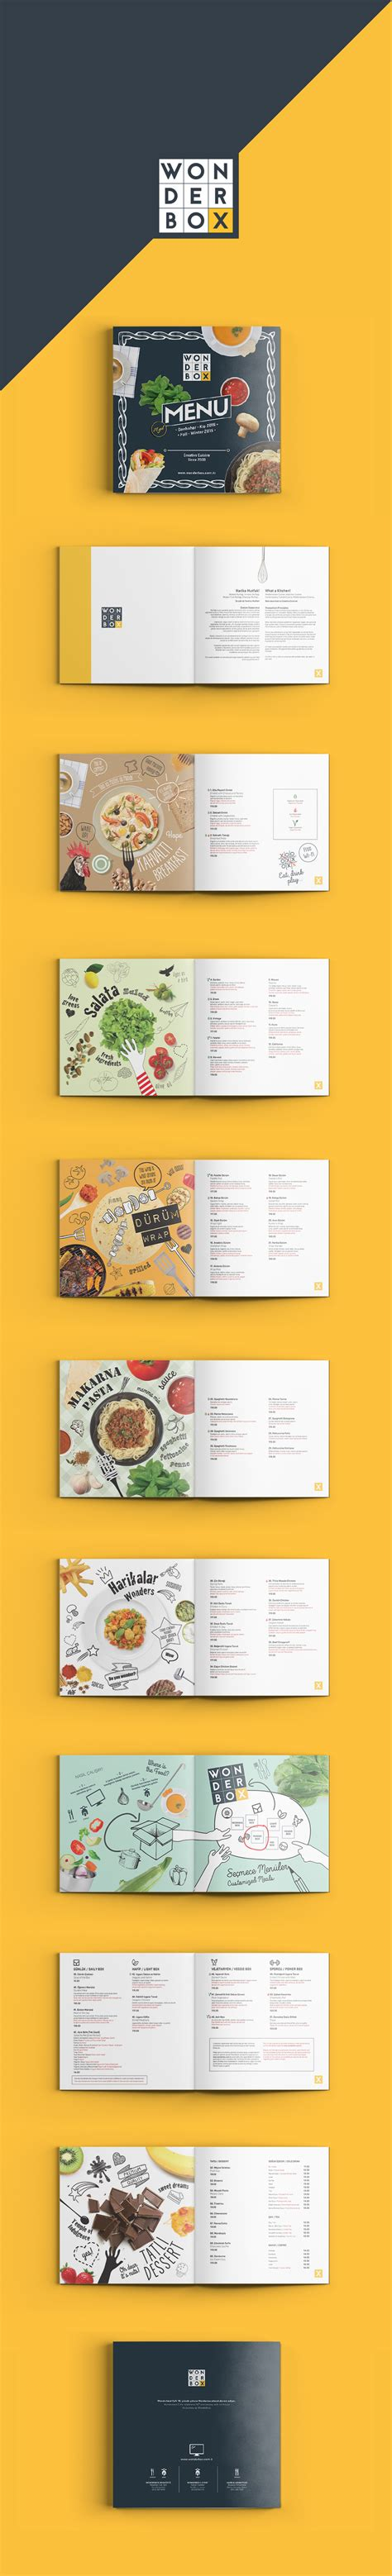 wonderbox cuisine wonderbox creative cuisine menu on behance